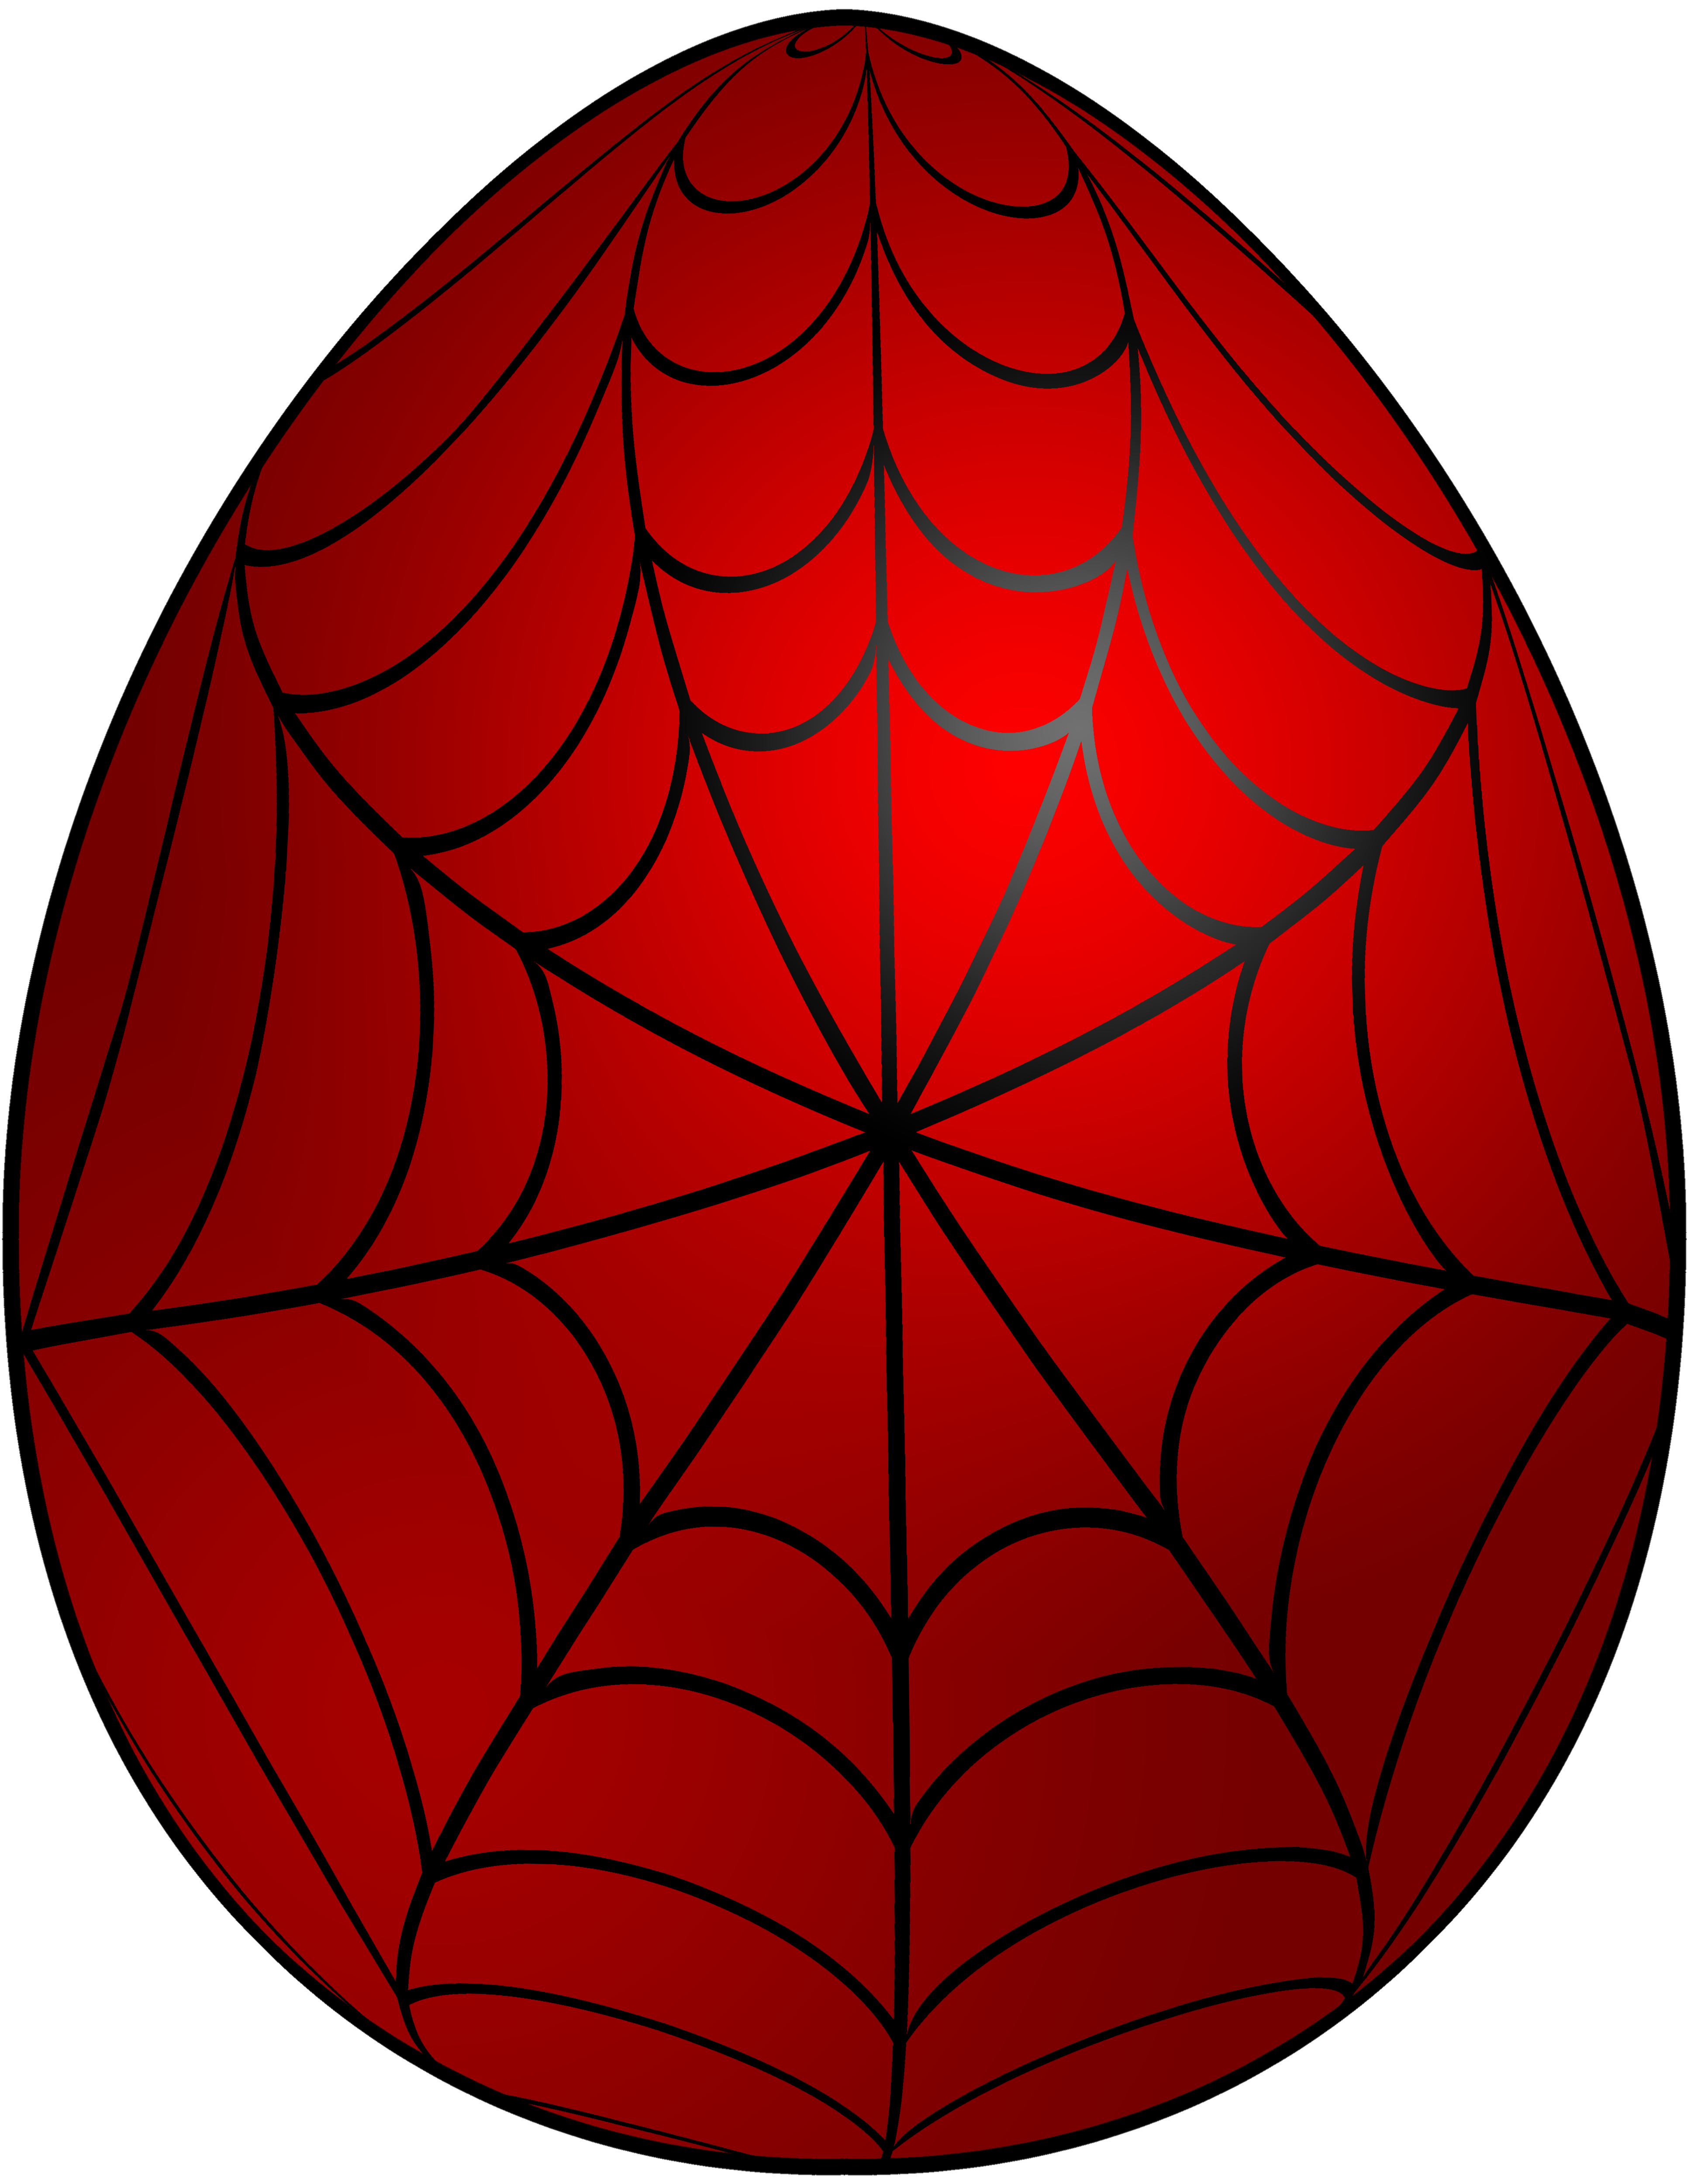 Spiderman easter egg png. Worm clipart roundworm